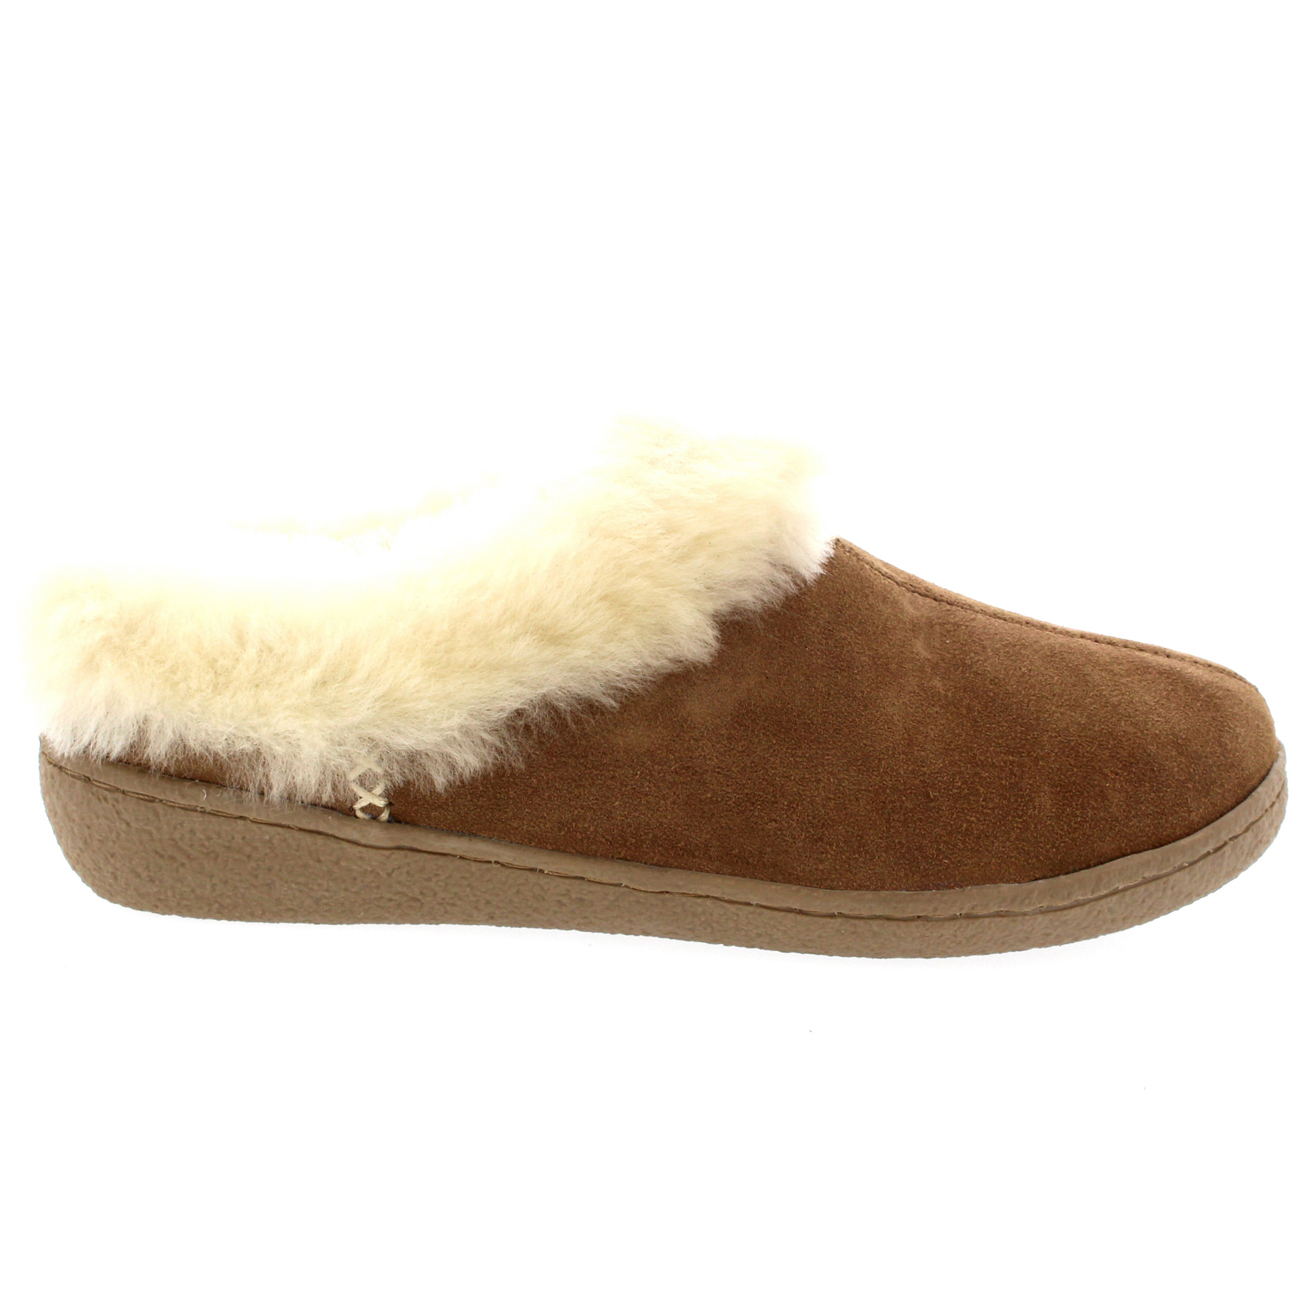 Slippers Australia Womens Genuine Suede Australian Sheepskin Fur Lined Warm